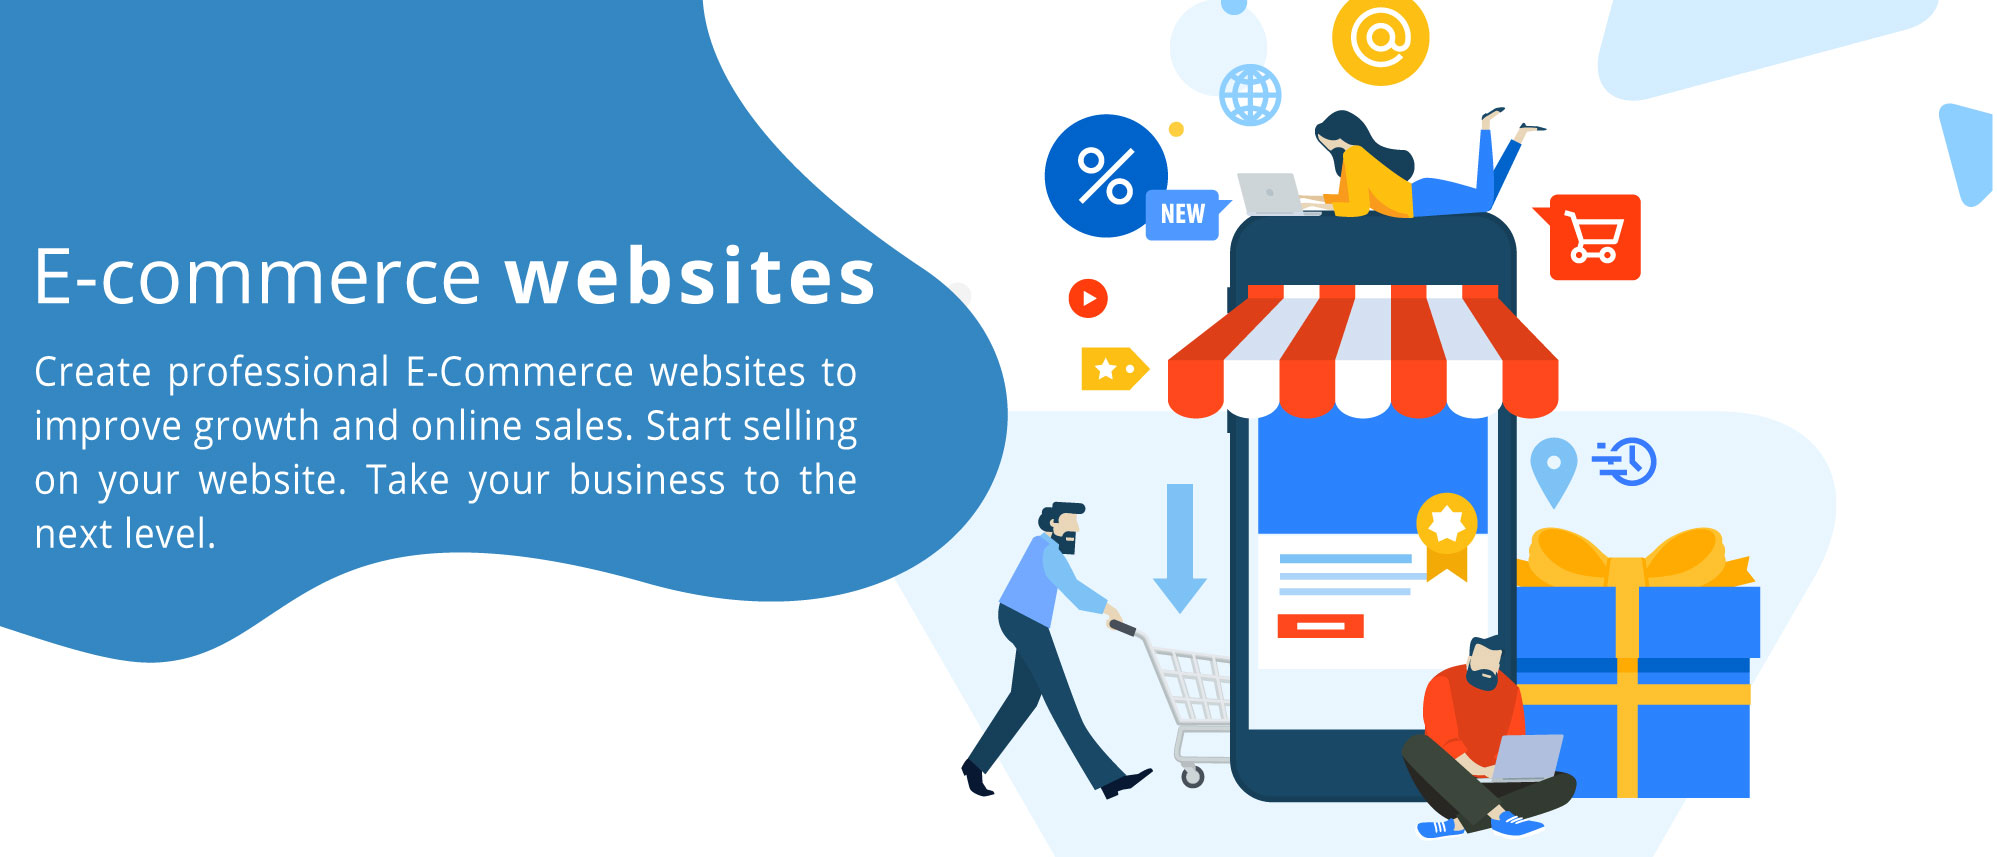 E-Commerce Lebanon, Create professional E-commerce websites to improve growth and online sales